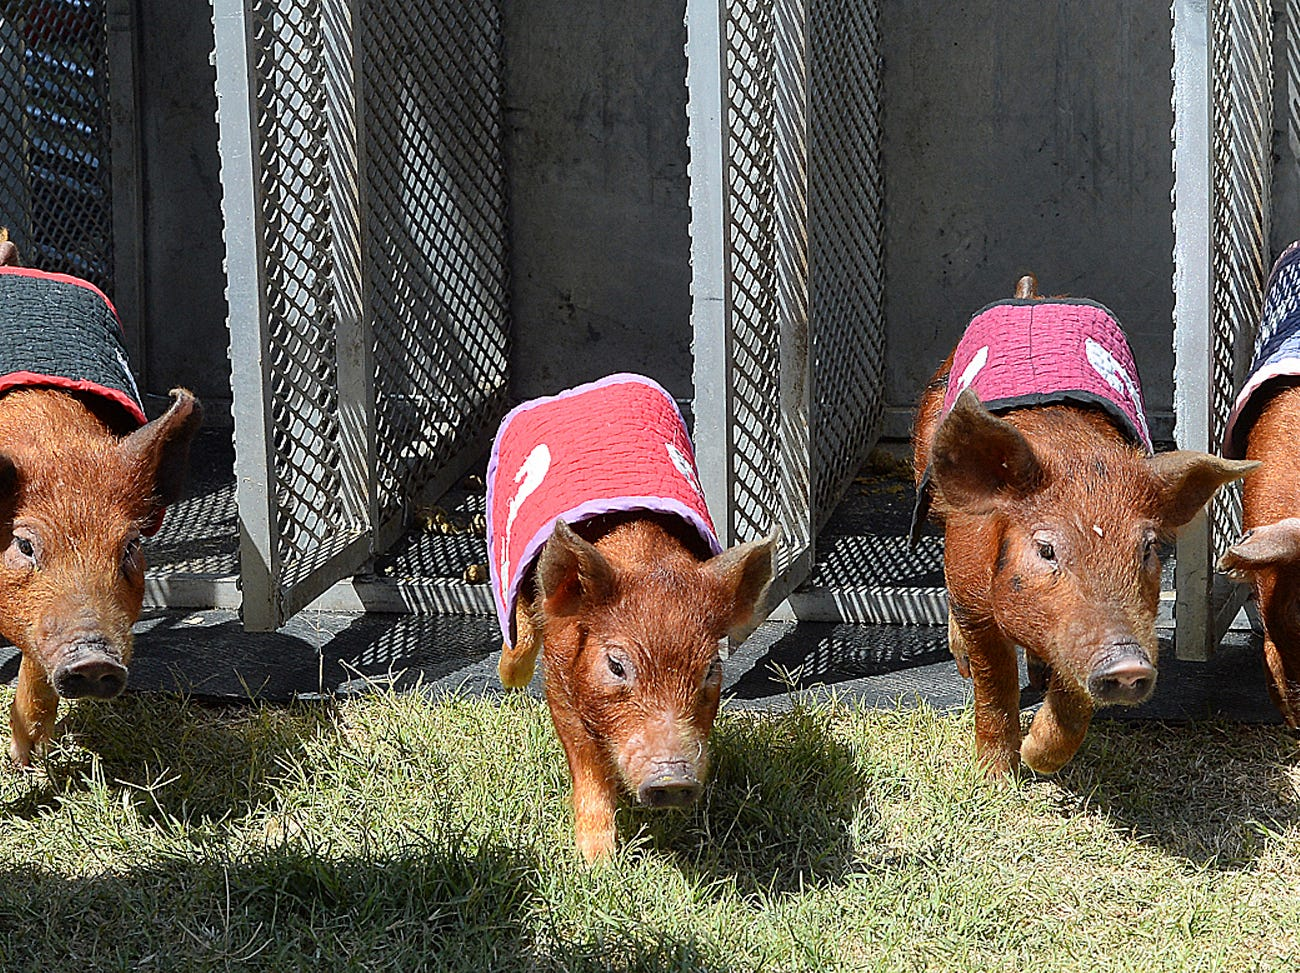 """Four Red Wattle pigs leave the chute during a Swifty Swine Racing Pigs heat race, Wednesday, April 3, 2019, at the annual Yuma County Fair, in Yuma, Ariz. This was the """"Men of Hollywood"""" heat race, which featured, from left, Brad Pigg, Justin Biebour, Hammuel Jackson and Kevin Bacon."""